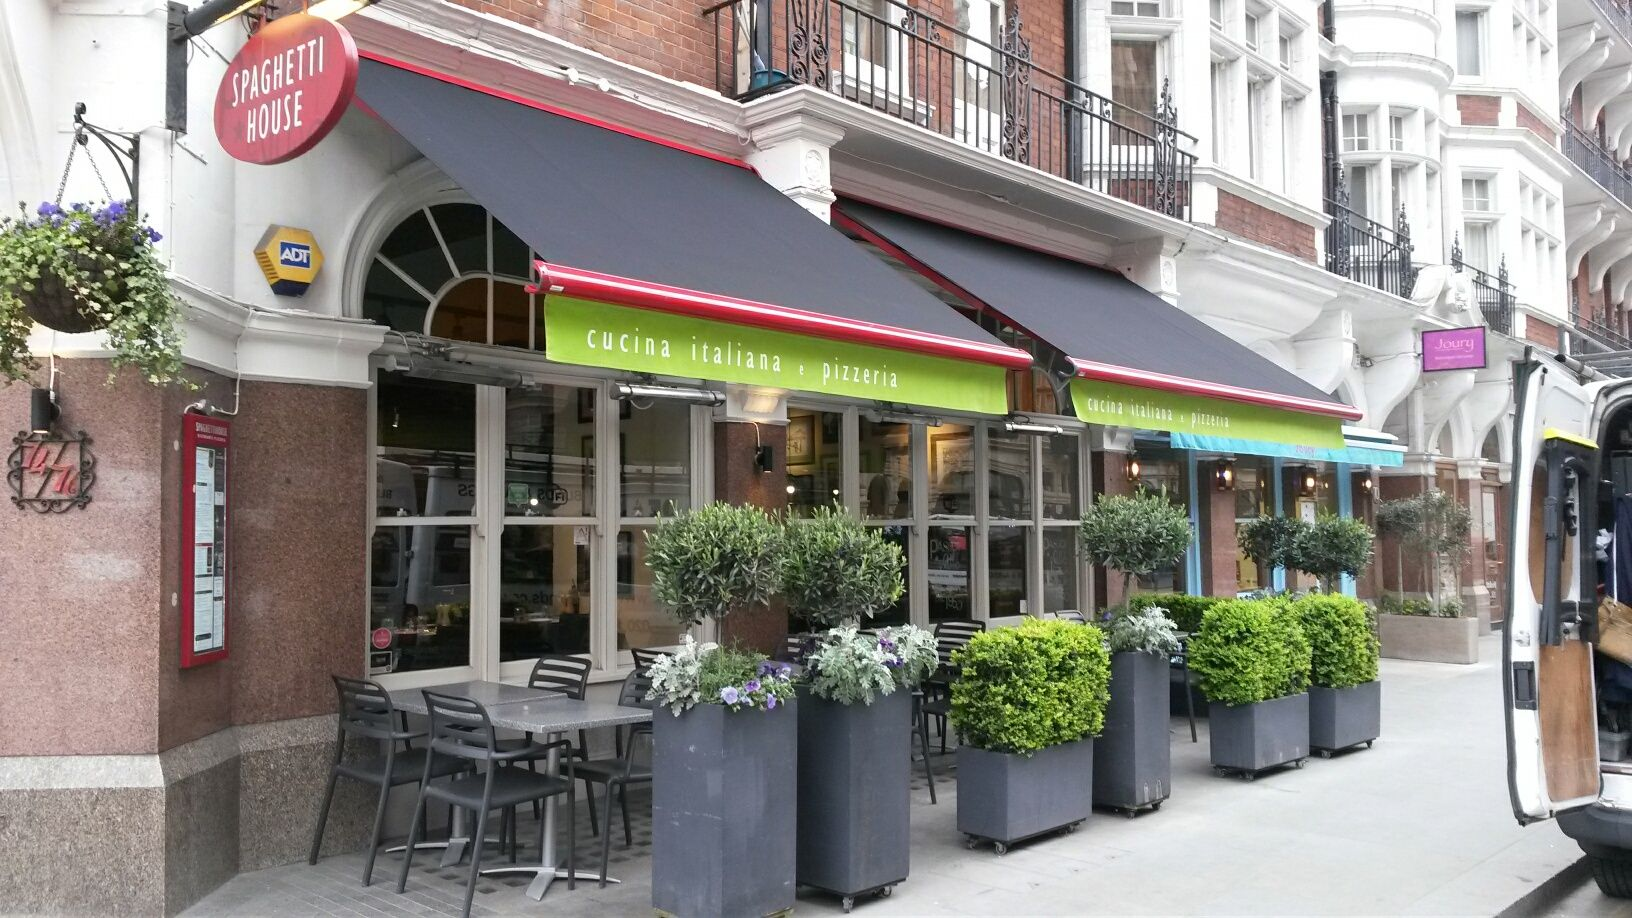 New Awnings For Spaghetti House By Deans Blinds Awnings Blinds Spaghetti House Commercial Property